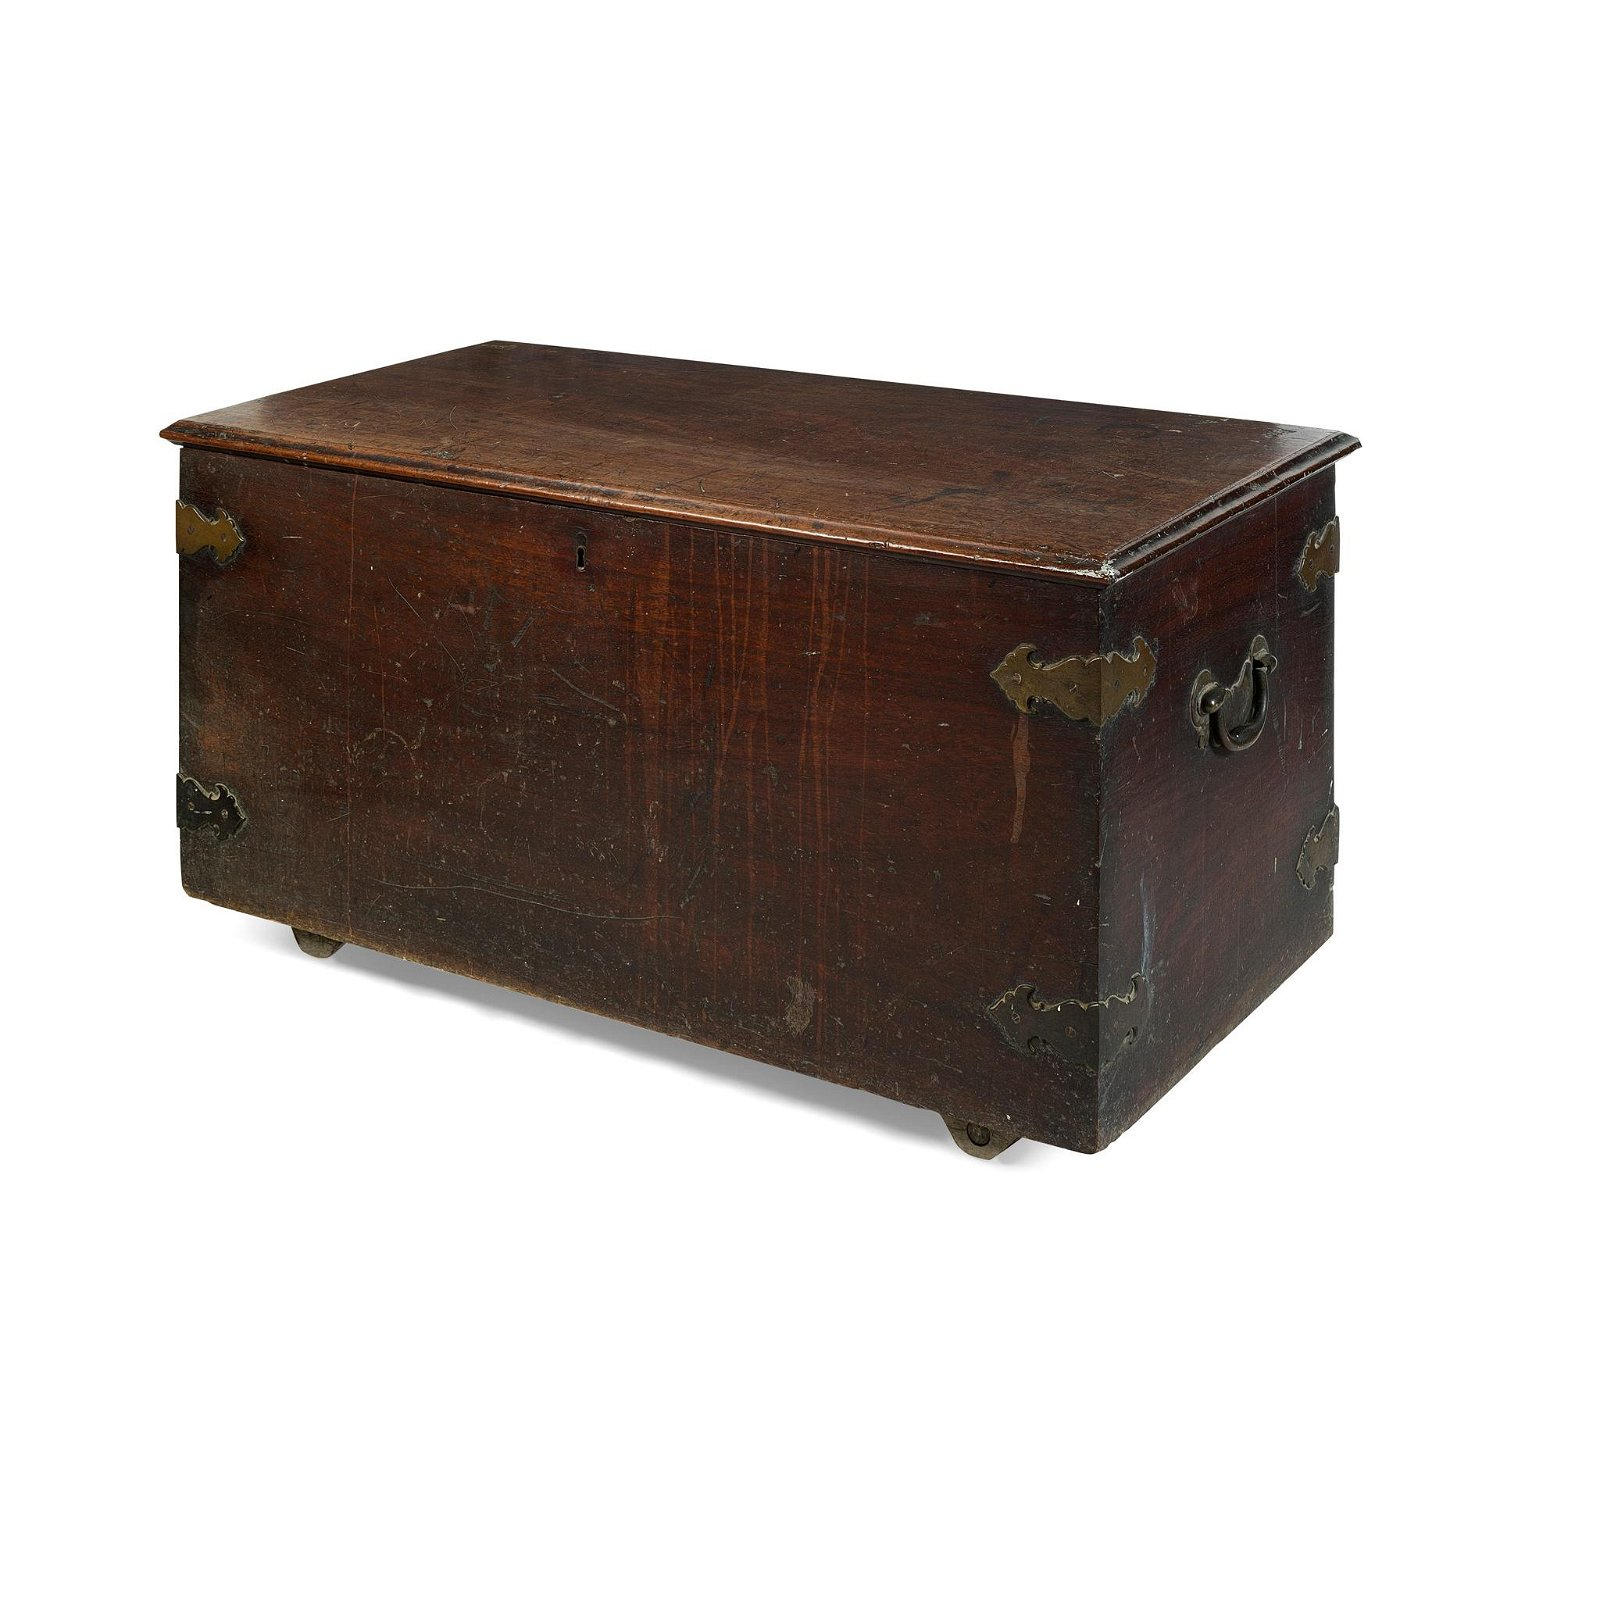 GEORGE III MAHOGANY AND BRASS BOUND CHEST 18TH CENTURY